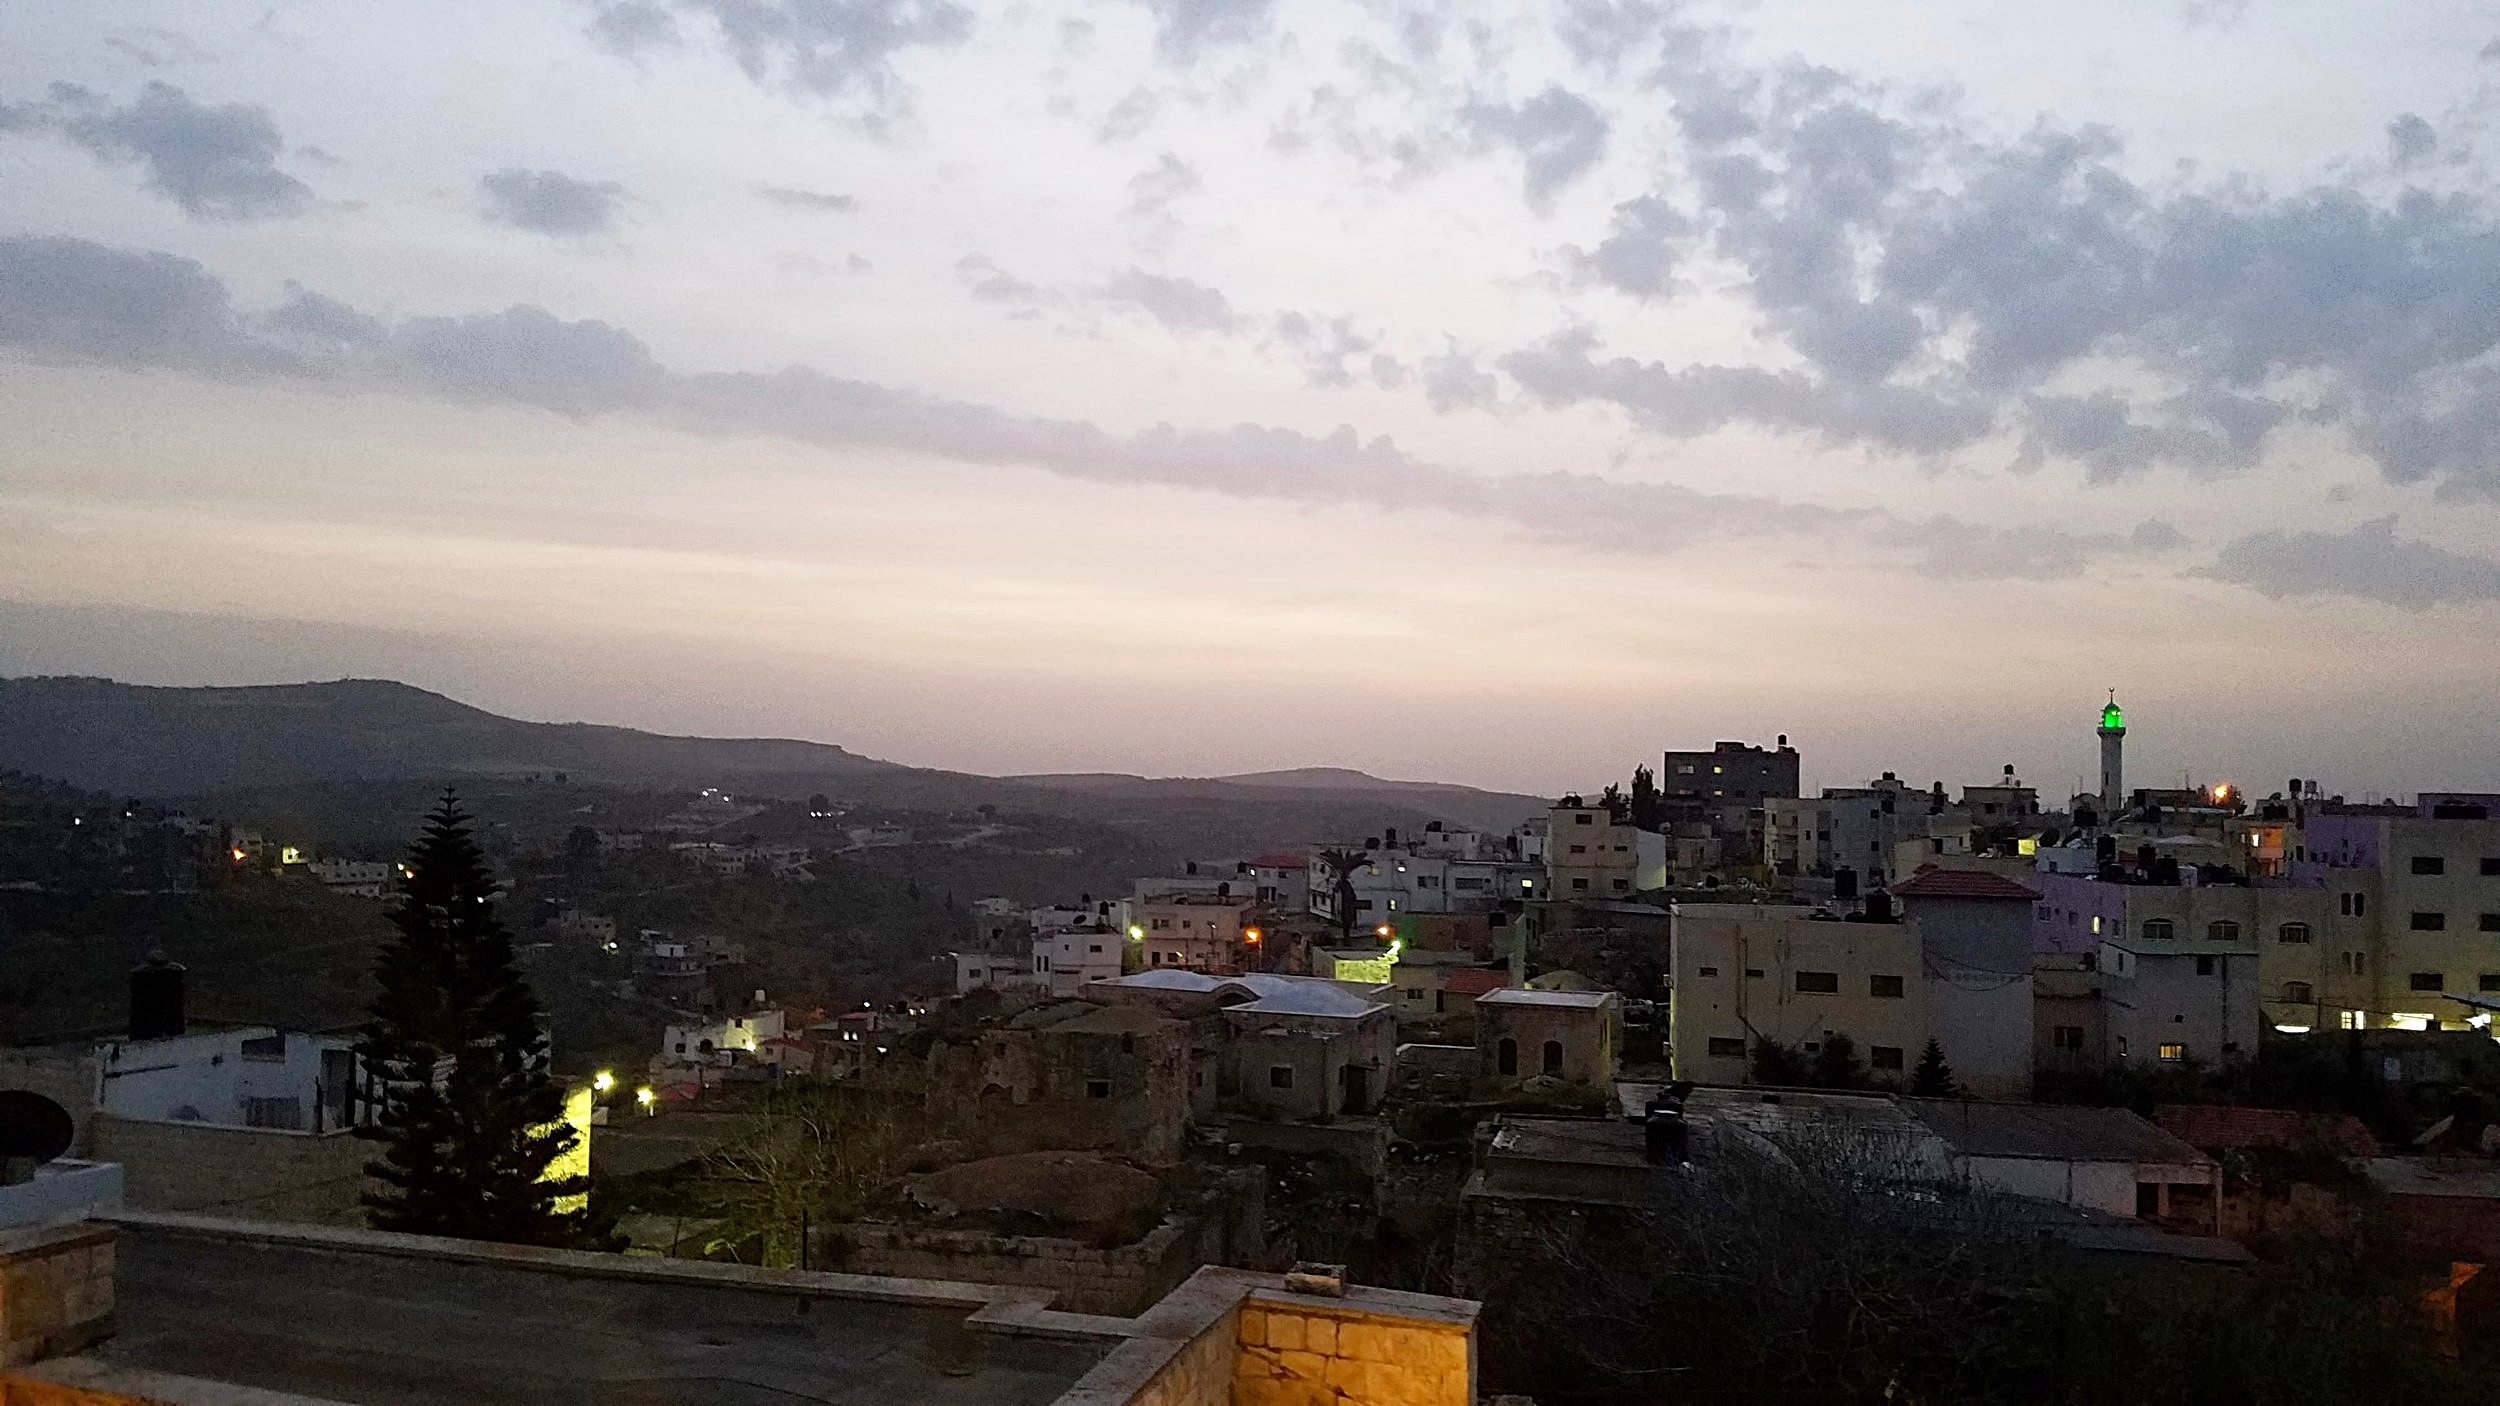 The village of Arraba at sunset from the rooftop of an Ottoman-era mansion turned community centre